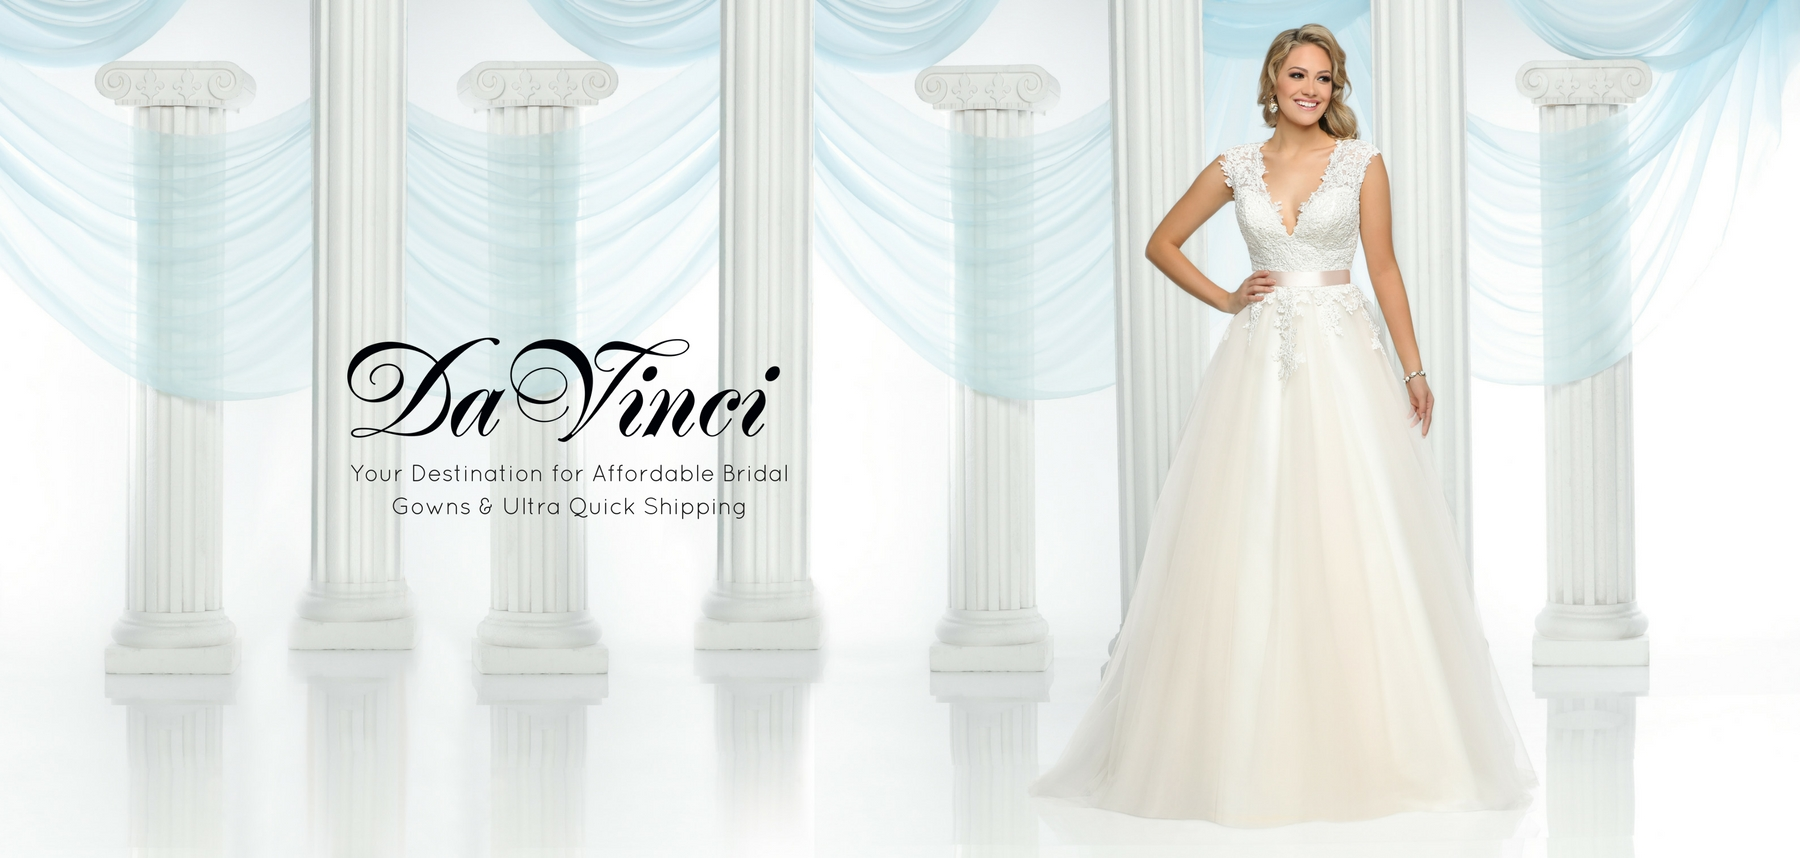 Wedding bridesmaid dresses davinci bridal collection slider 1 ombrellifo Images